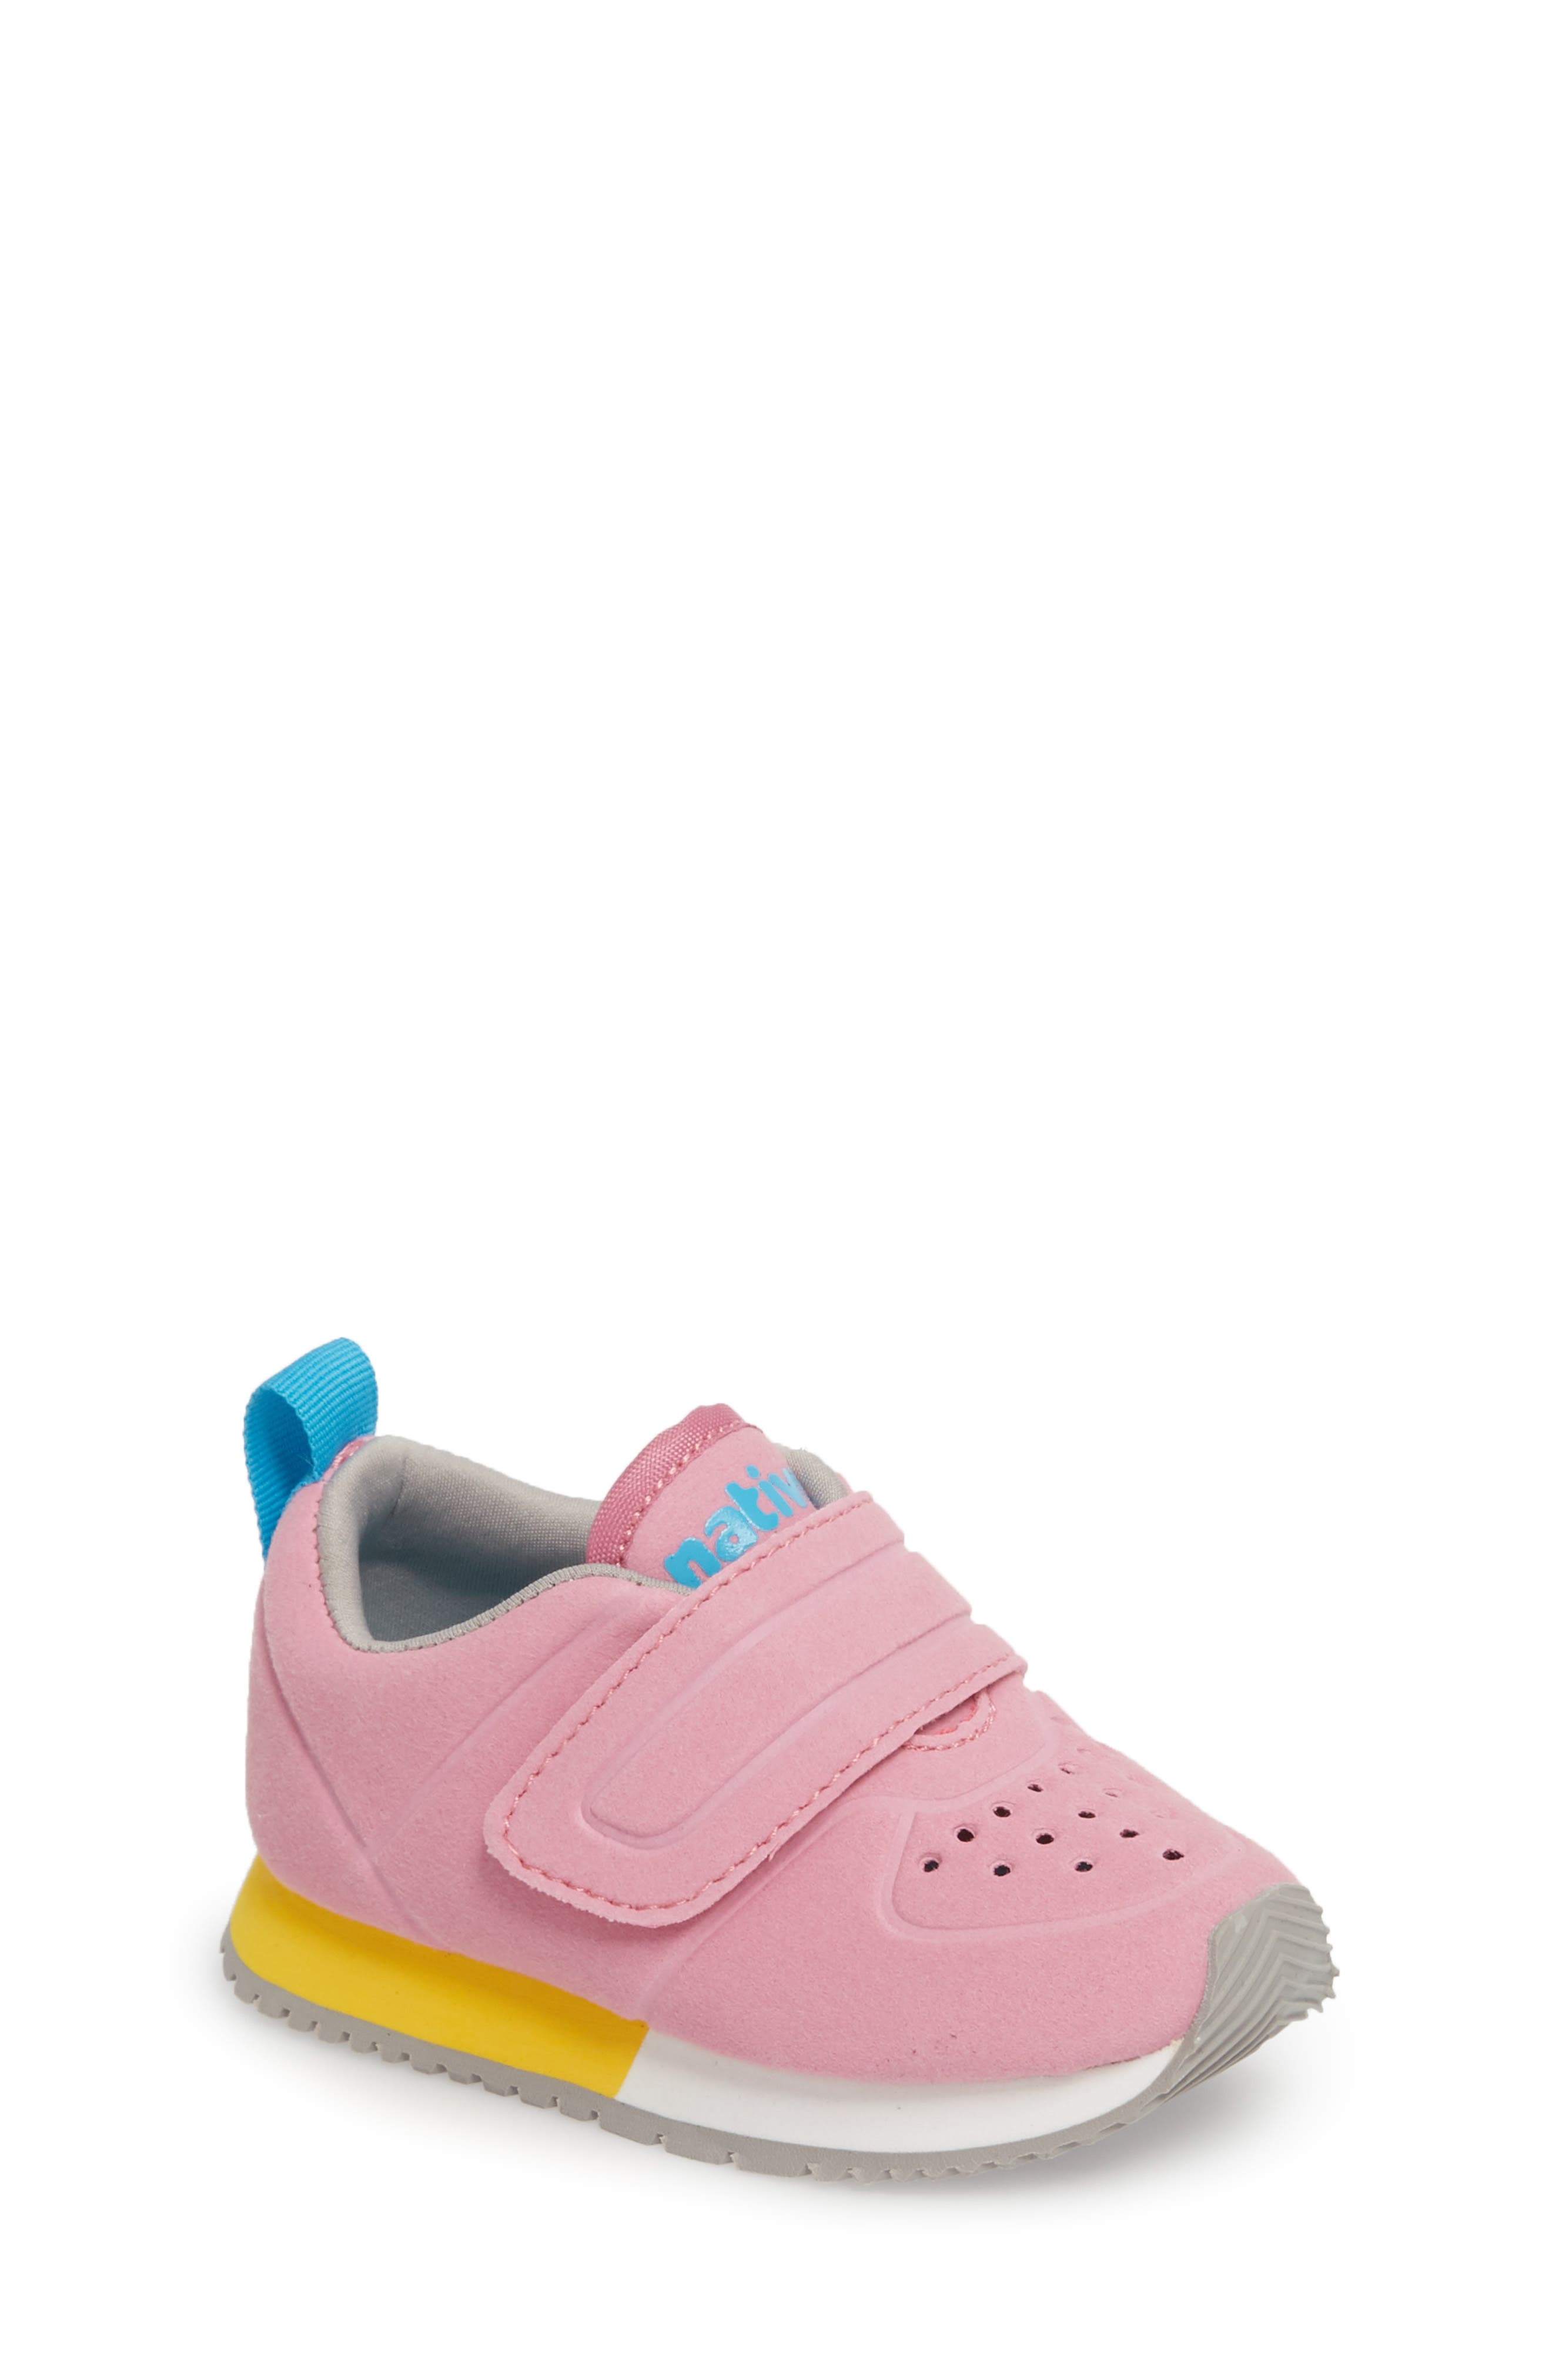 Main Image - Native Cornell Perforated Sneaker (Walker, Toddler & Little Kid)